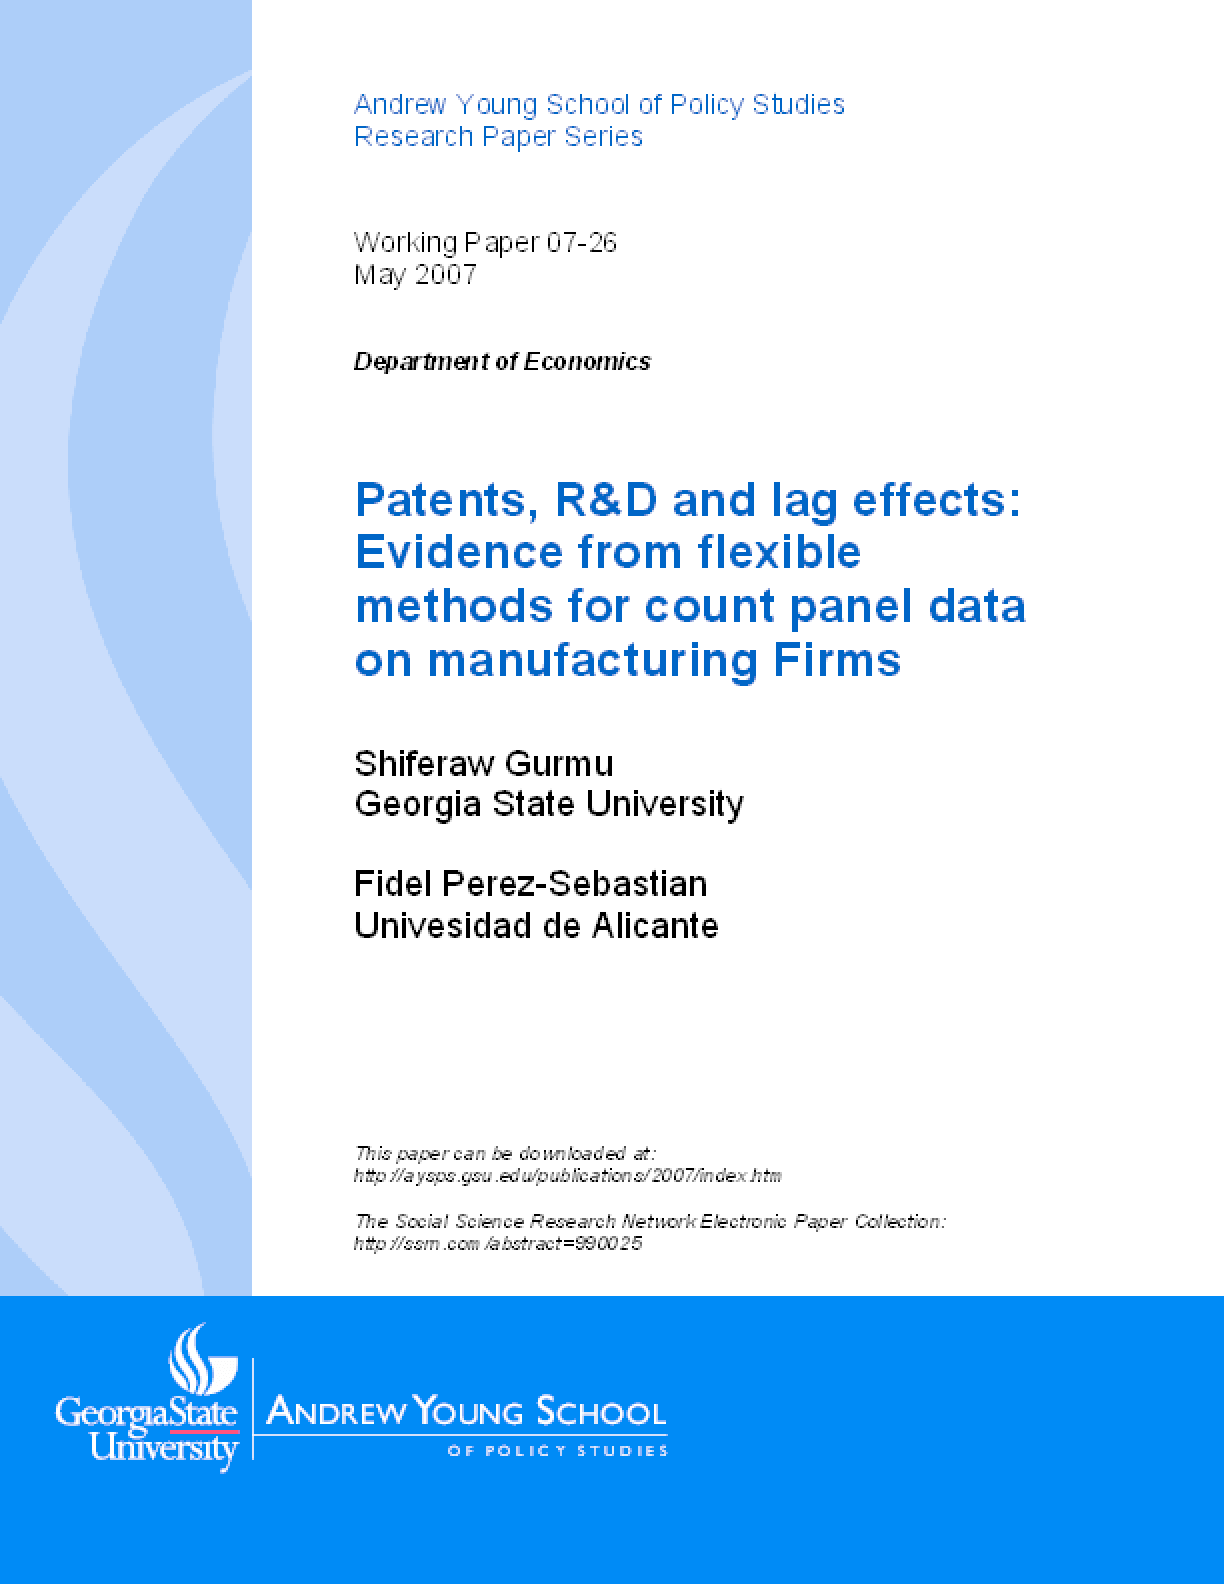 Patents, R&D and lag effects: Evidence from flexible methods for count panel data on manufacturing Firms